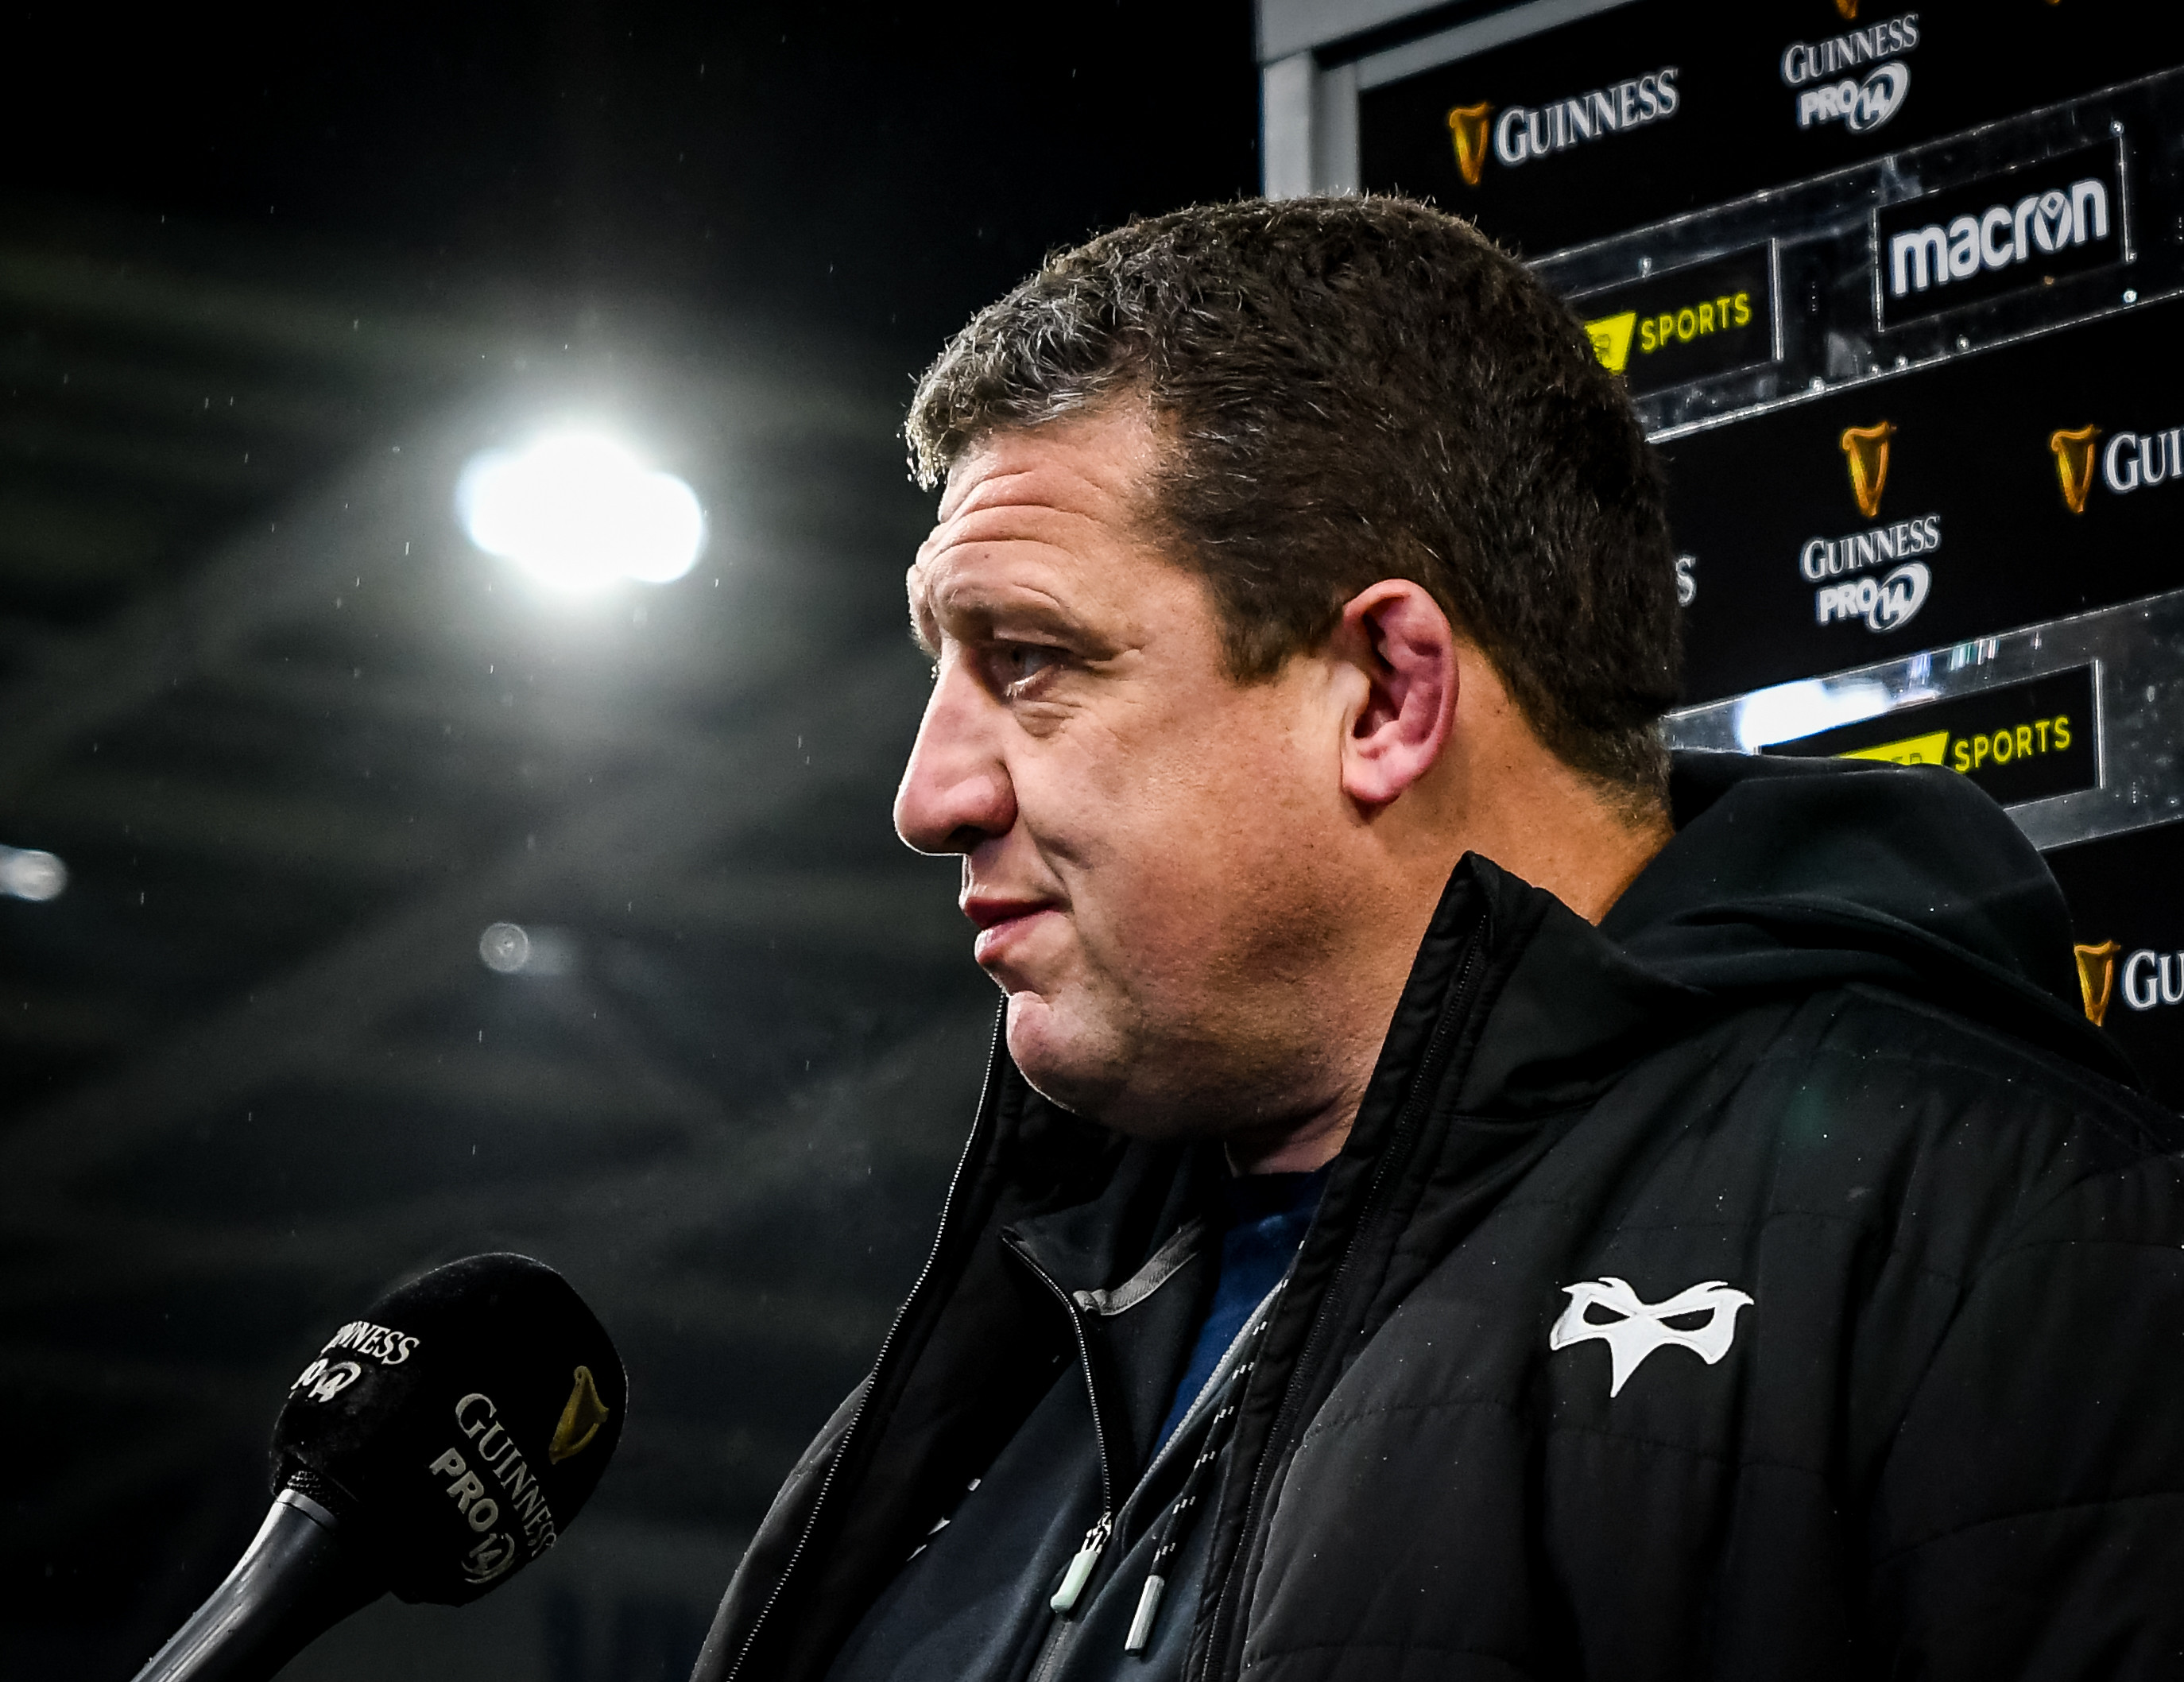 Ospreys Head Coach Toby Booth addressing the media